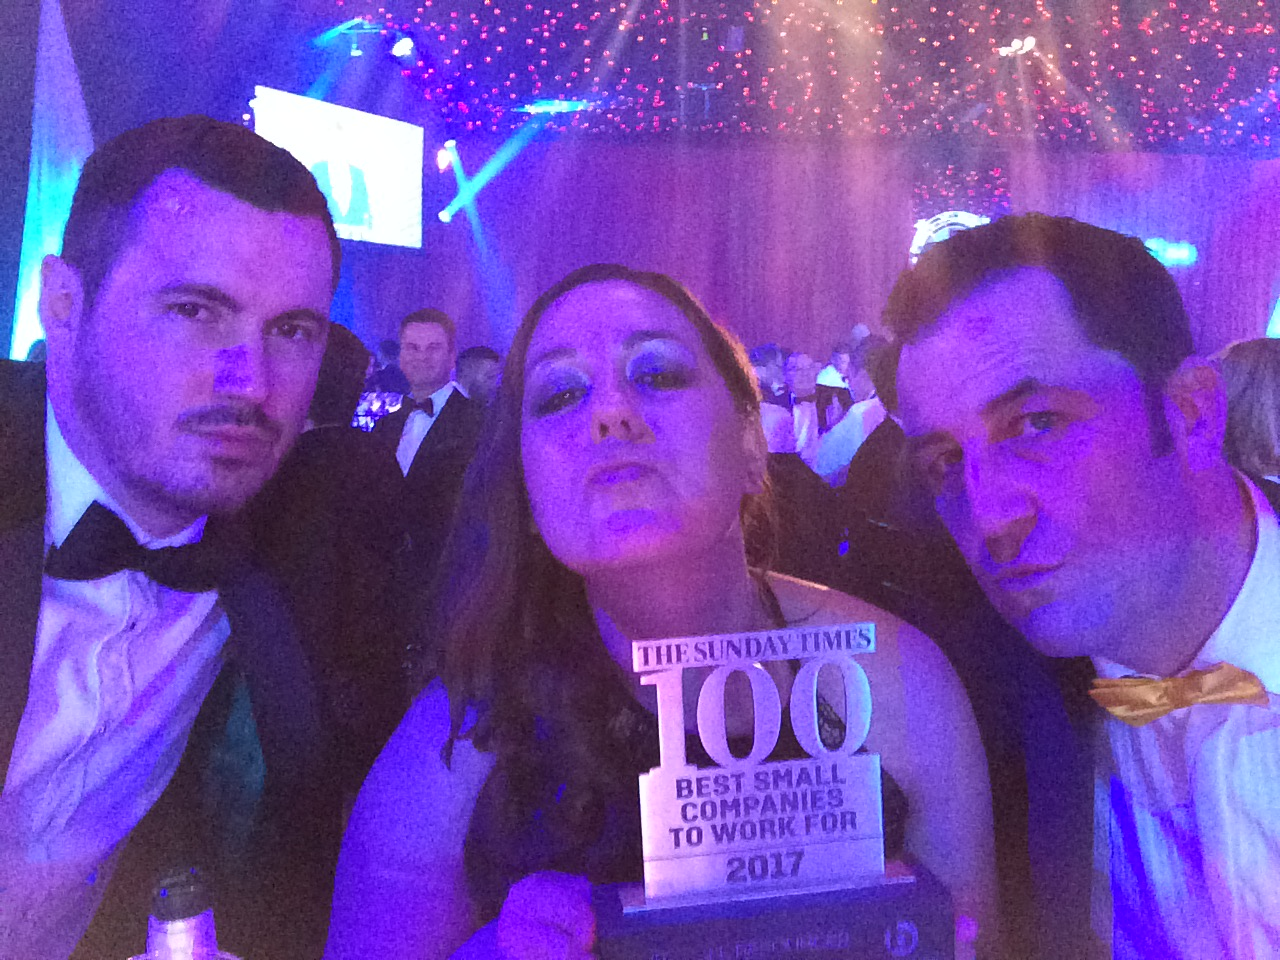 Sunday Times 100 Best Small Companies to Work For, 2017, Trophy, Ricky Knight, Ellie Fletcher, Tremayne Hall, Pout